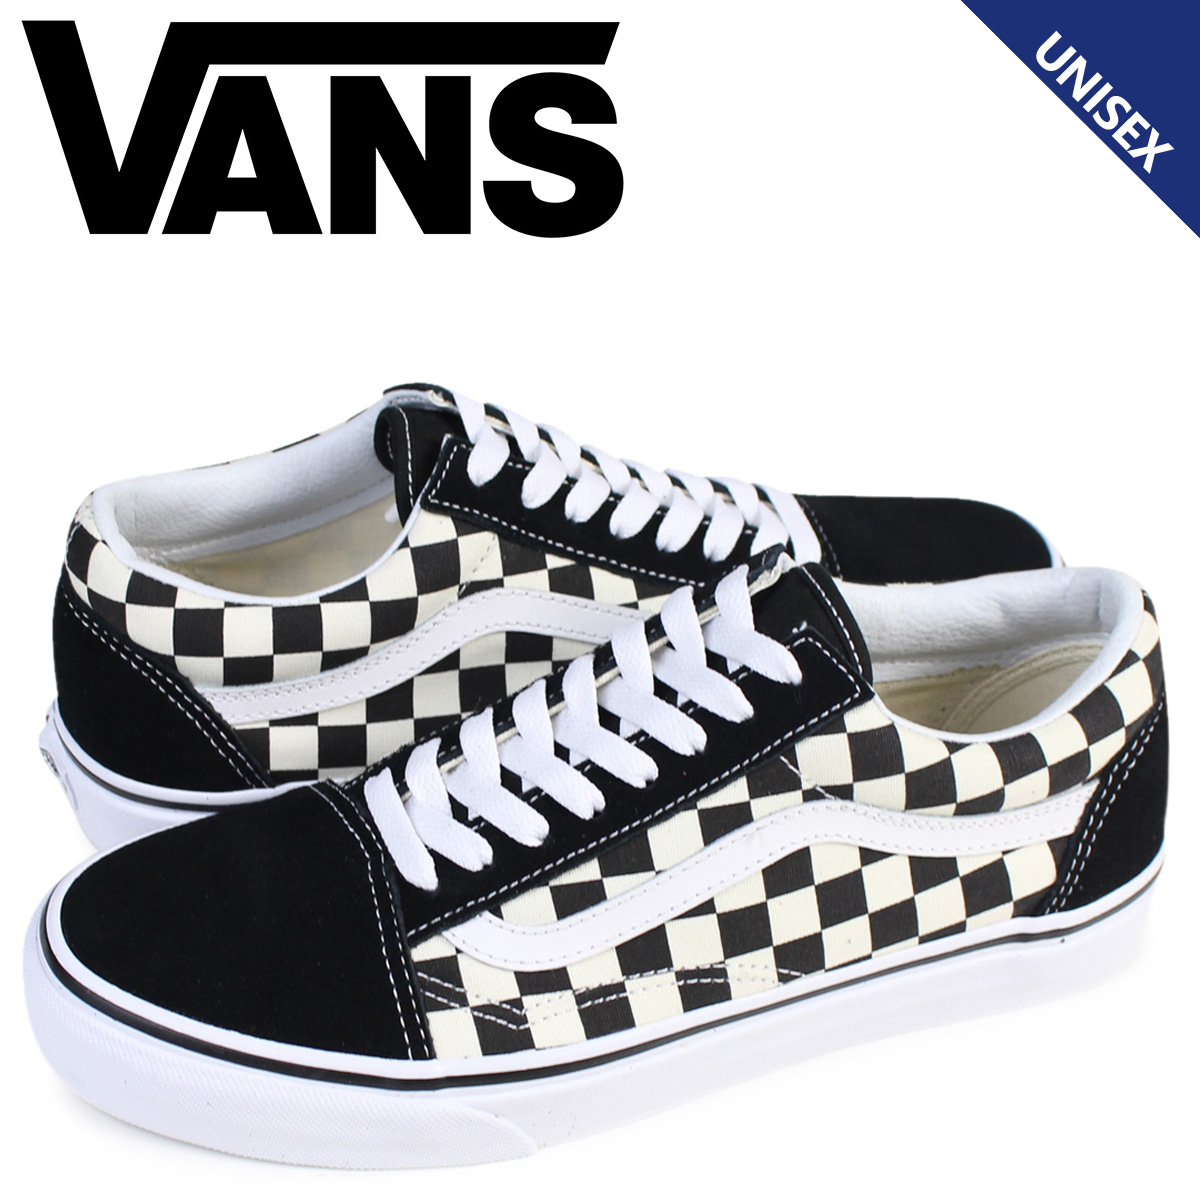 VANS old school sneakers men gap Dis vans station wagons OLD SKOOL  VN0A38G1P0S shoes black  6 16 Shinnyu load  0ce635d54